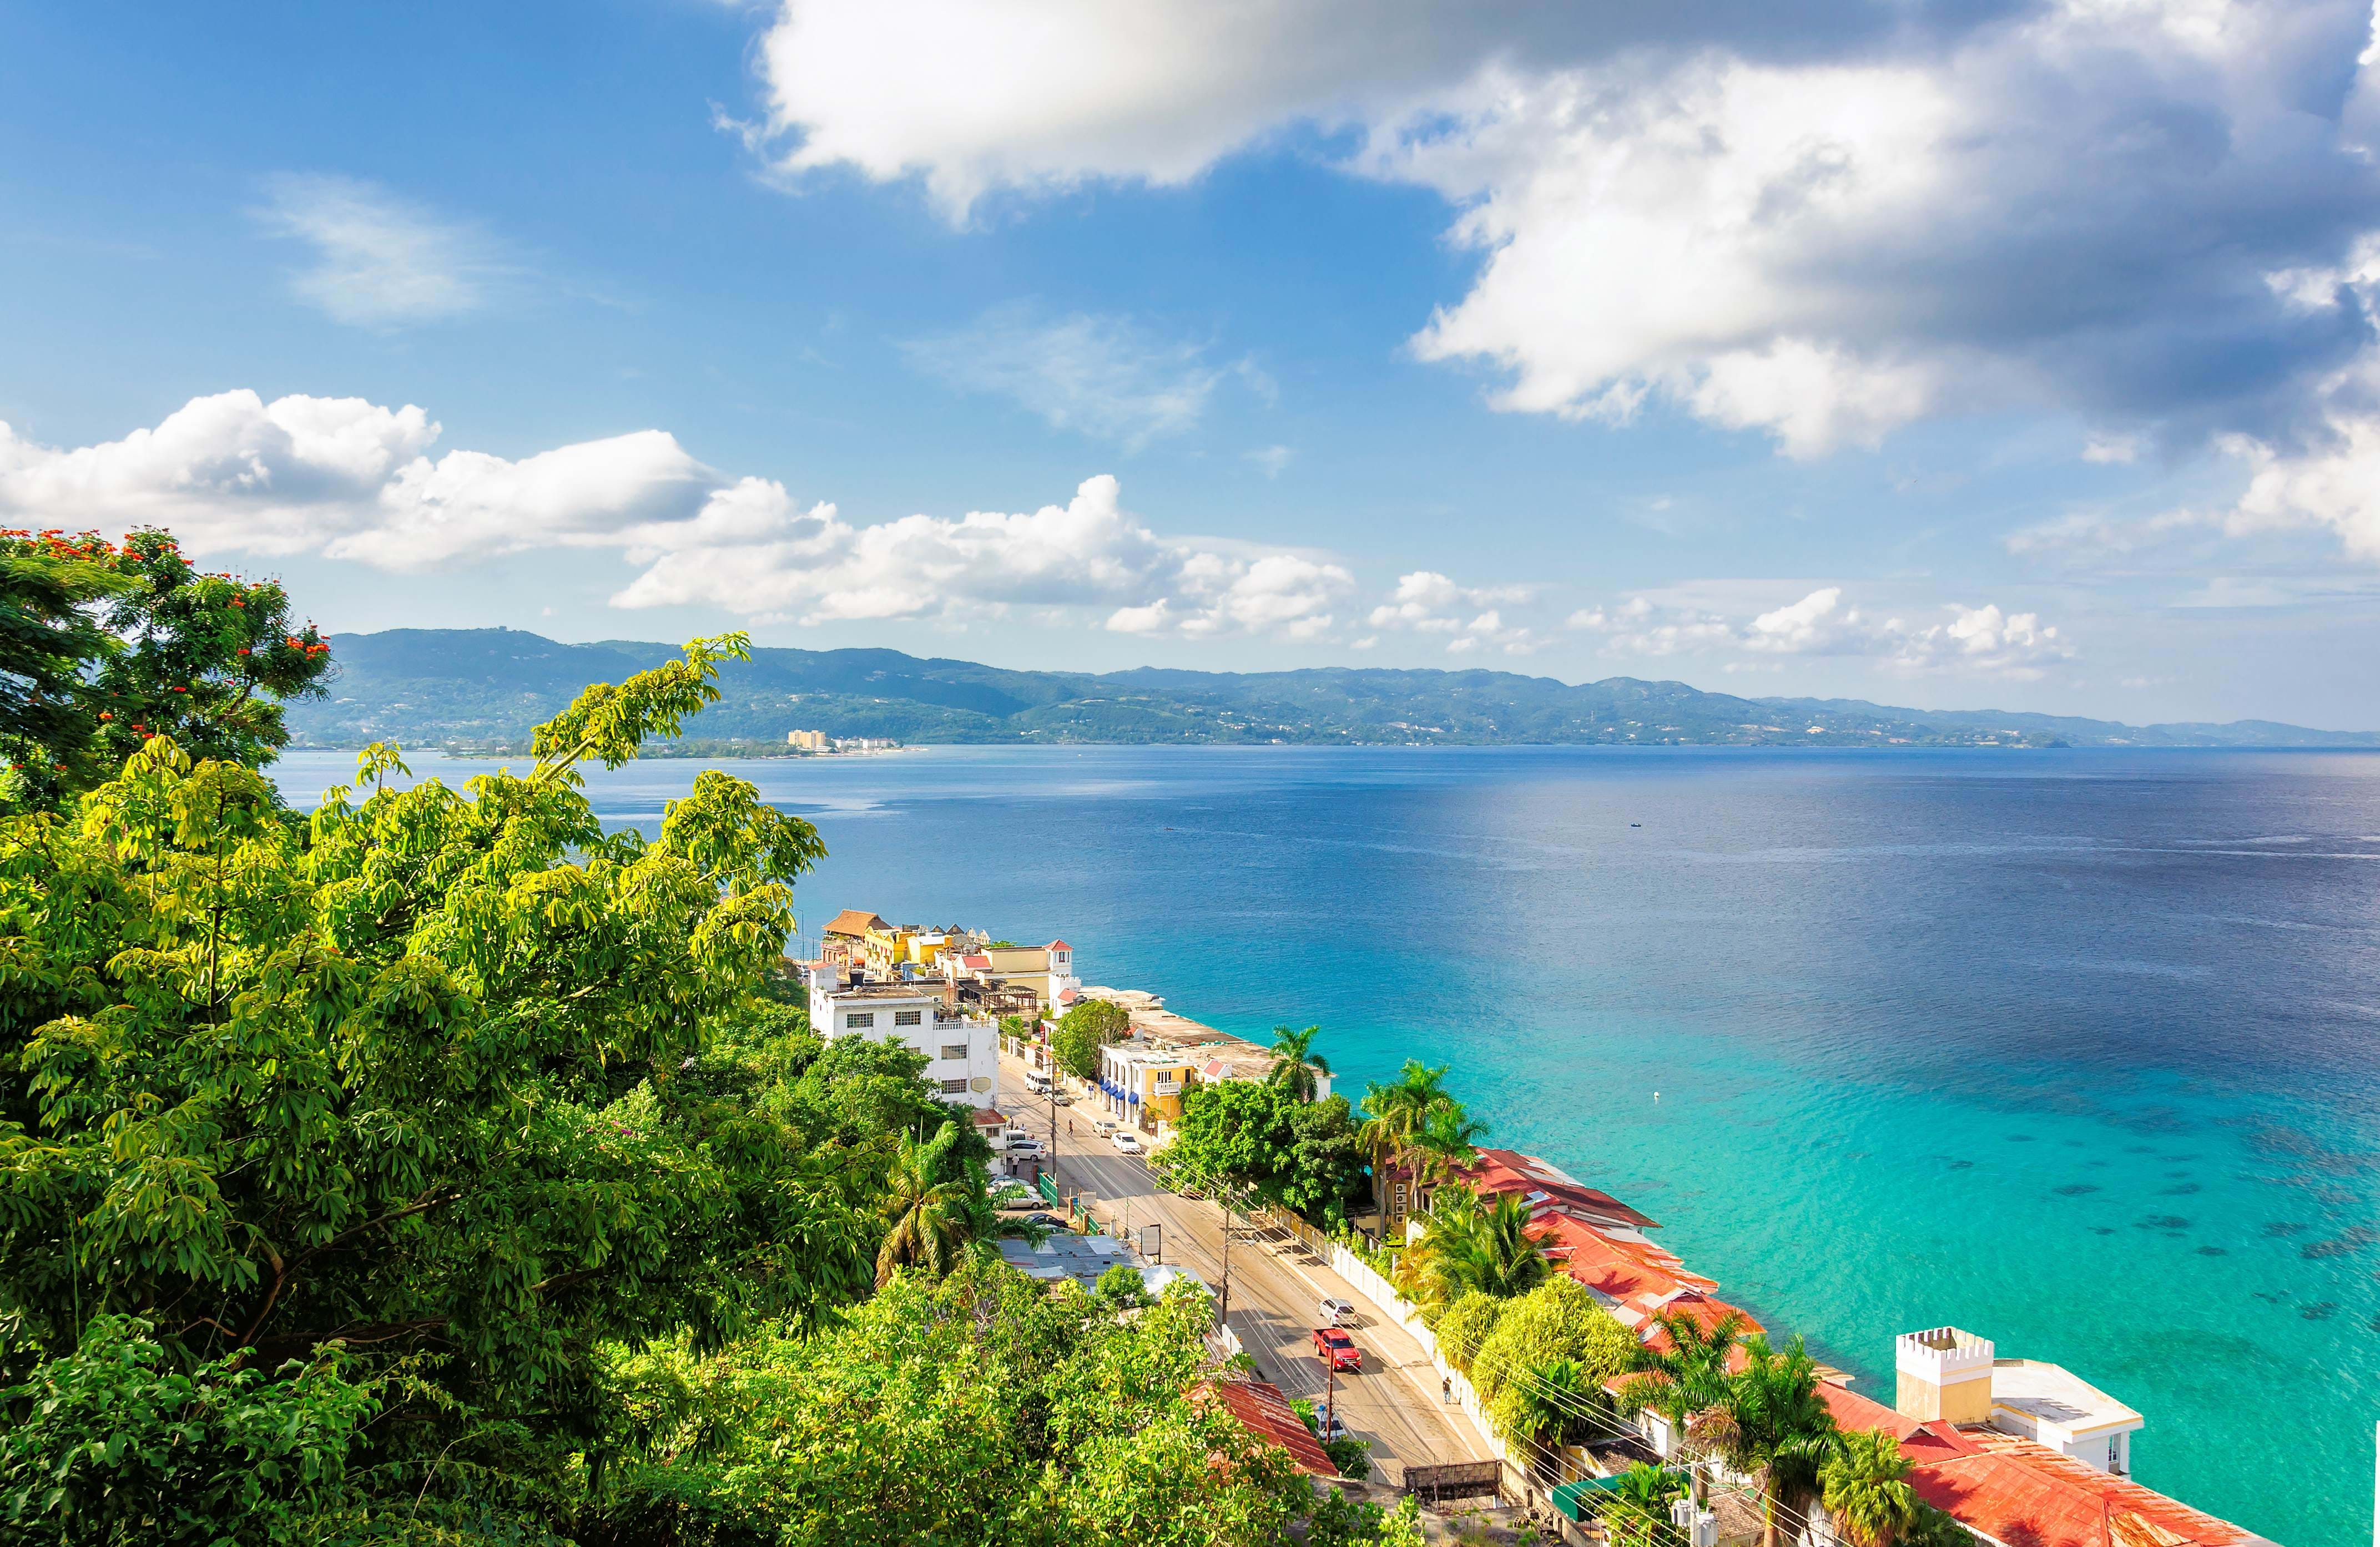 jamaica-sea-view-sunny-day